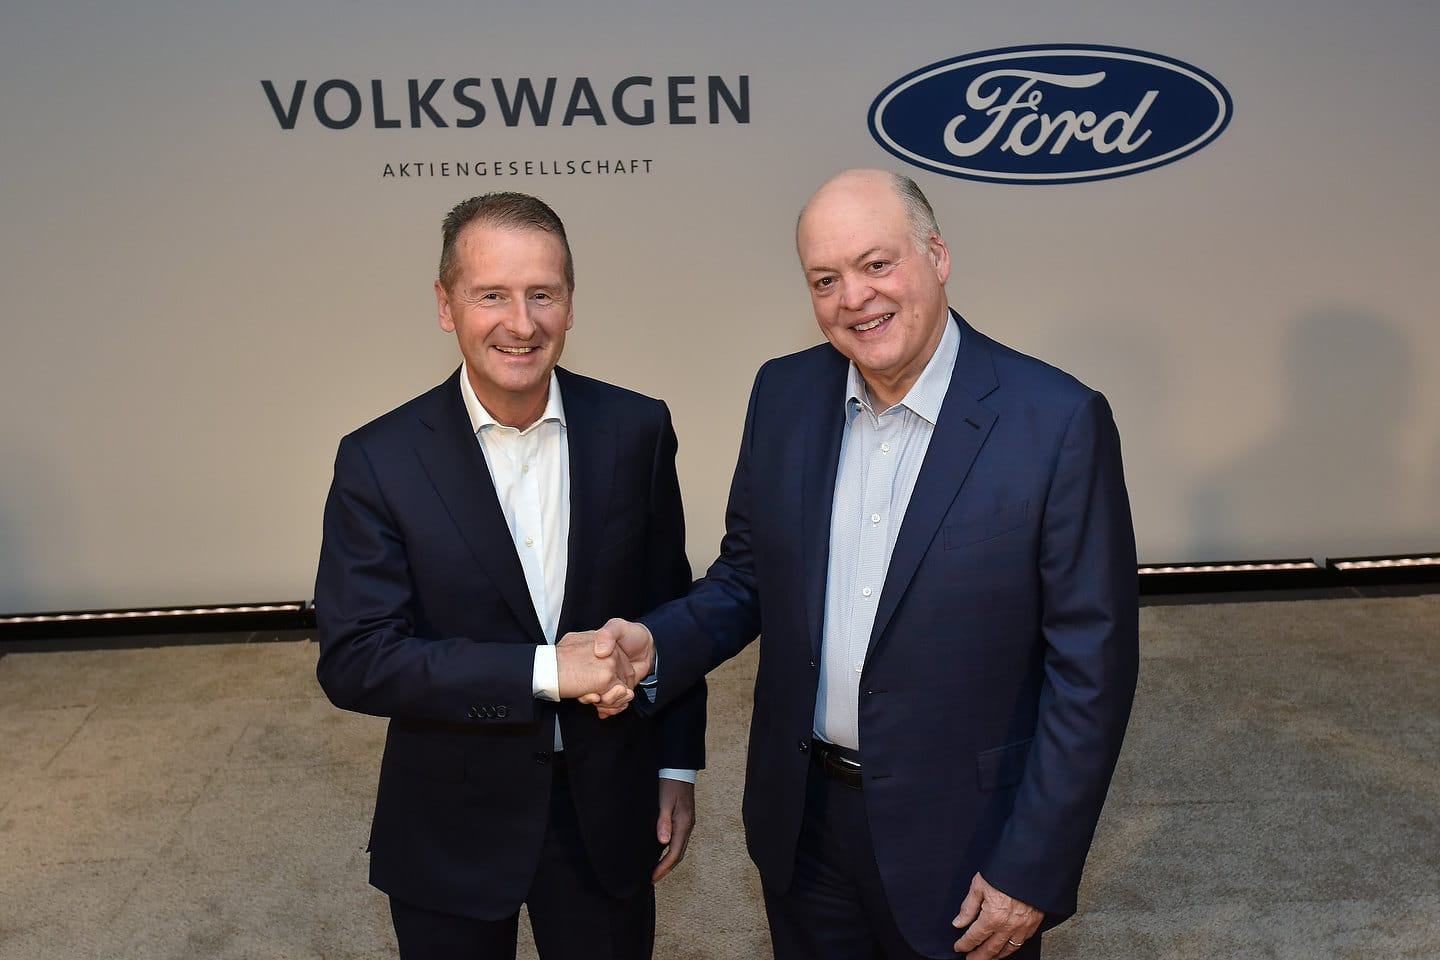 Volkswagen CEO Dr. Herbert Diess and Ford President and CEO Jim Hackett